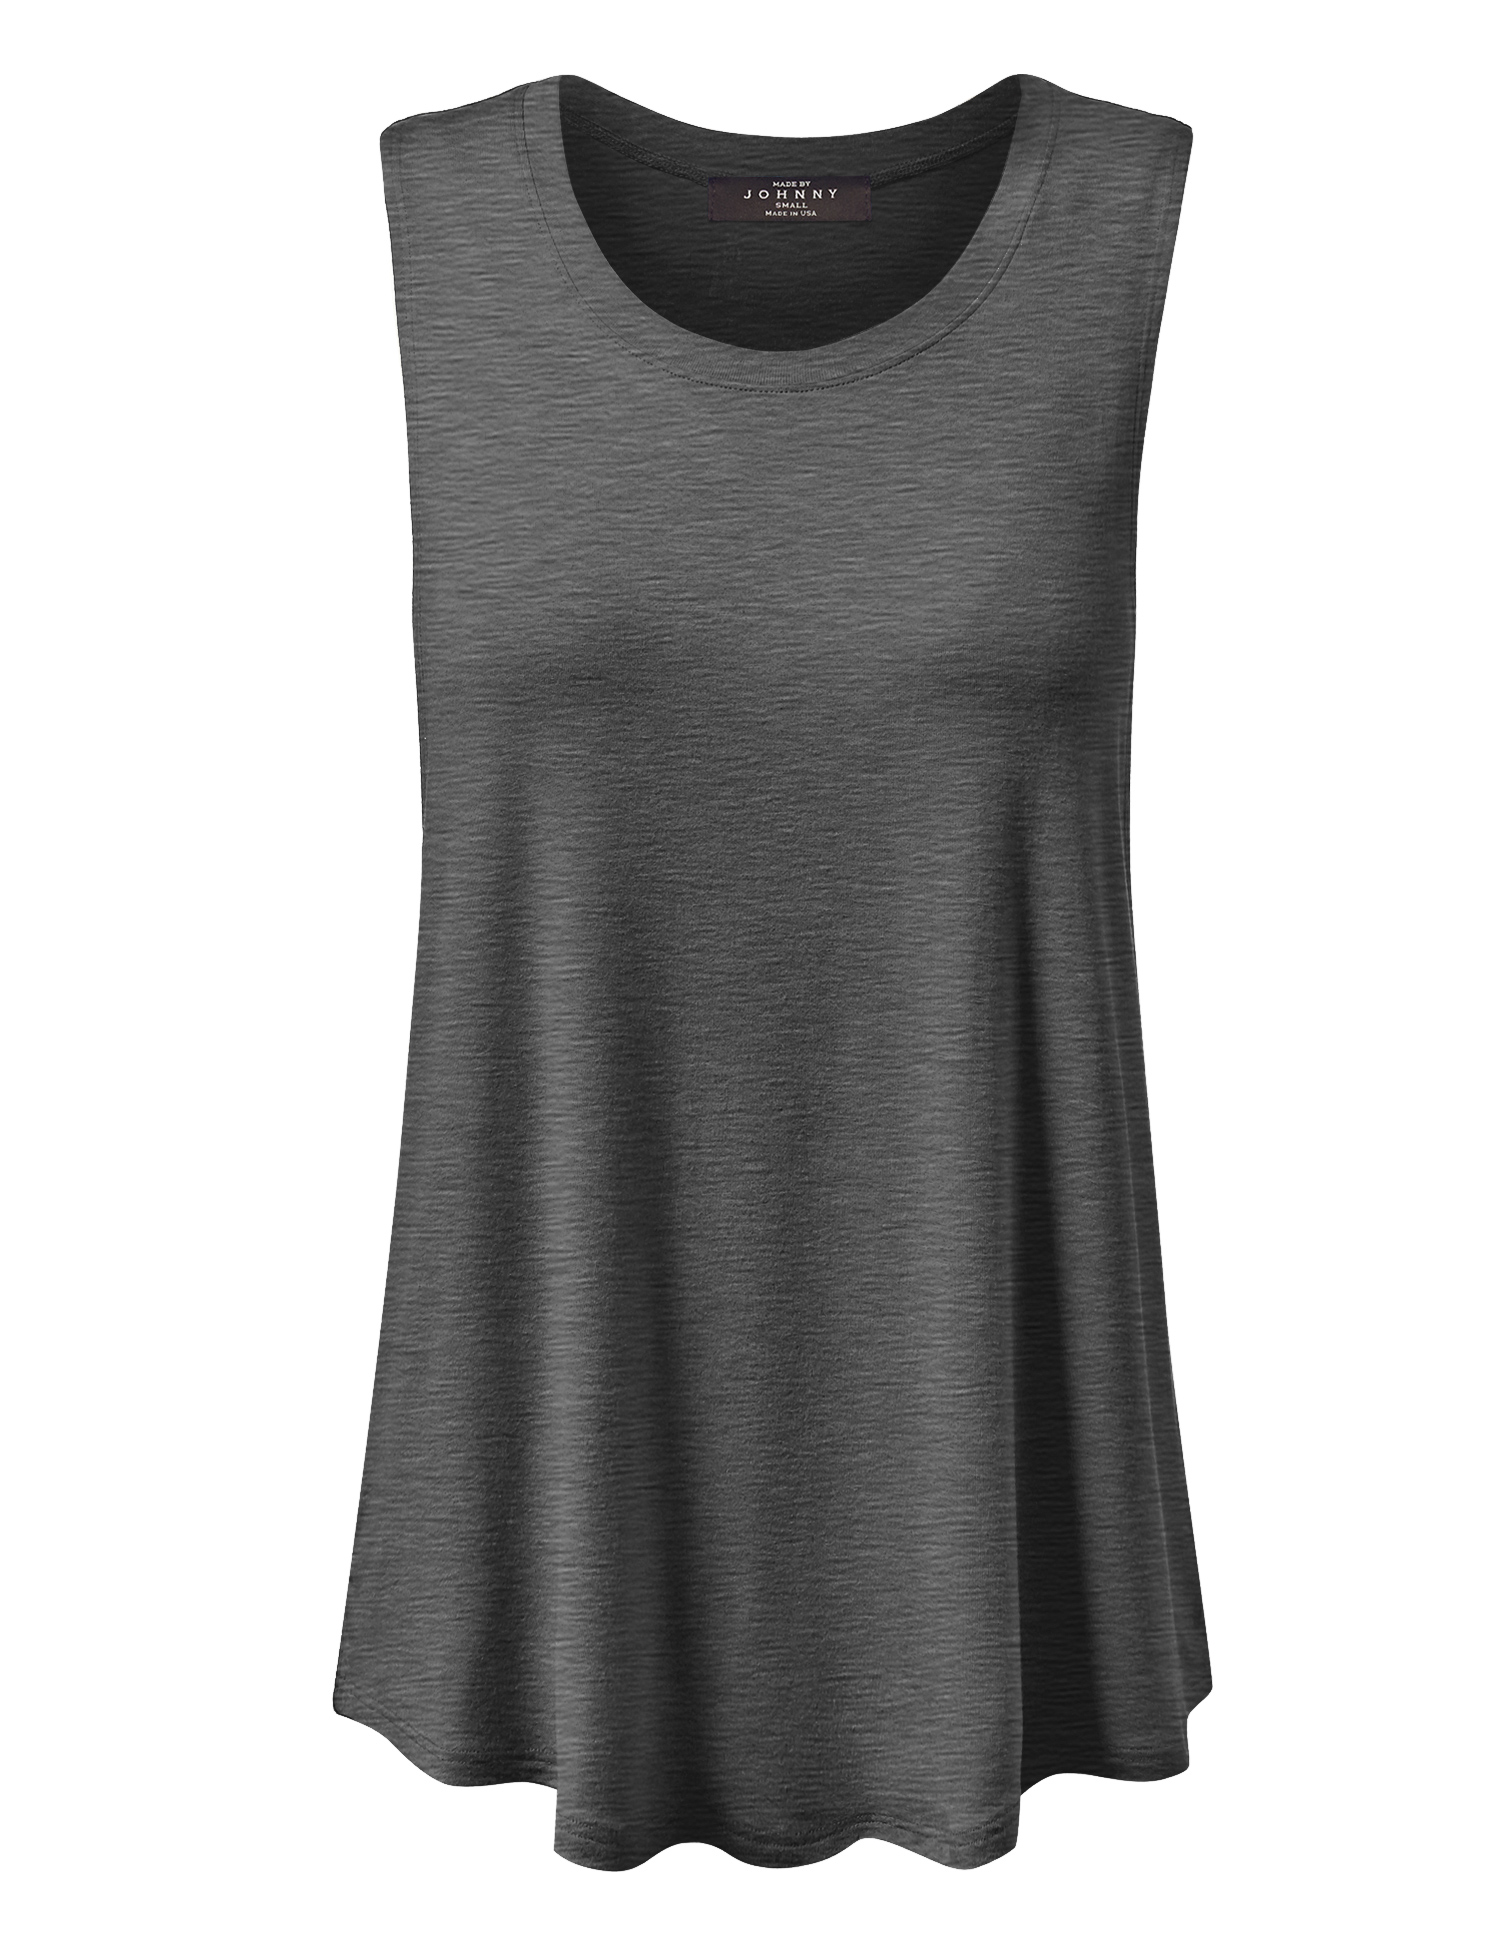 Made by Johnny MBJ WT902 Womens Basic Loose Fit Tank Top XXXL Heather_Charcoal